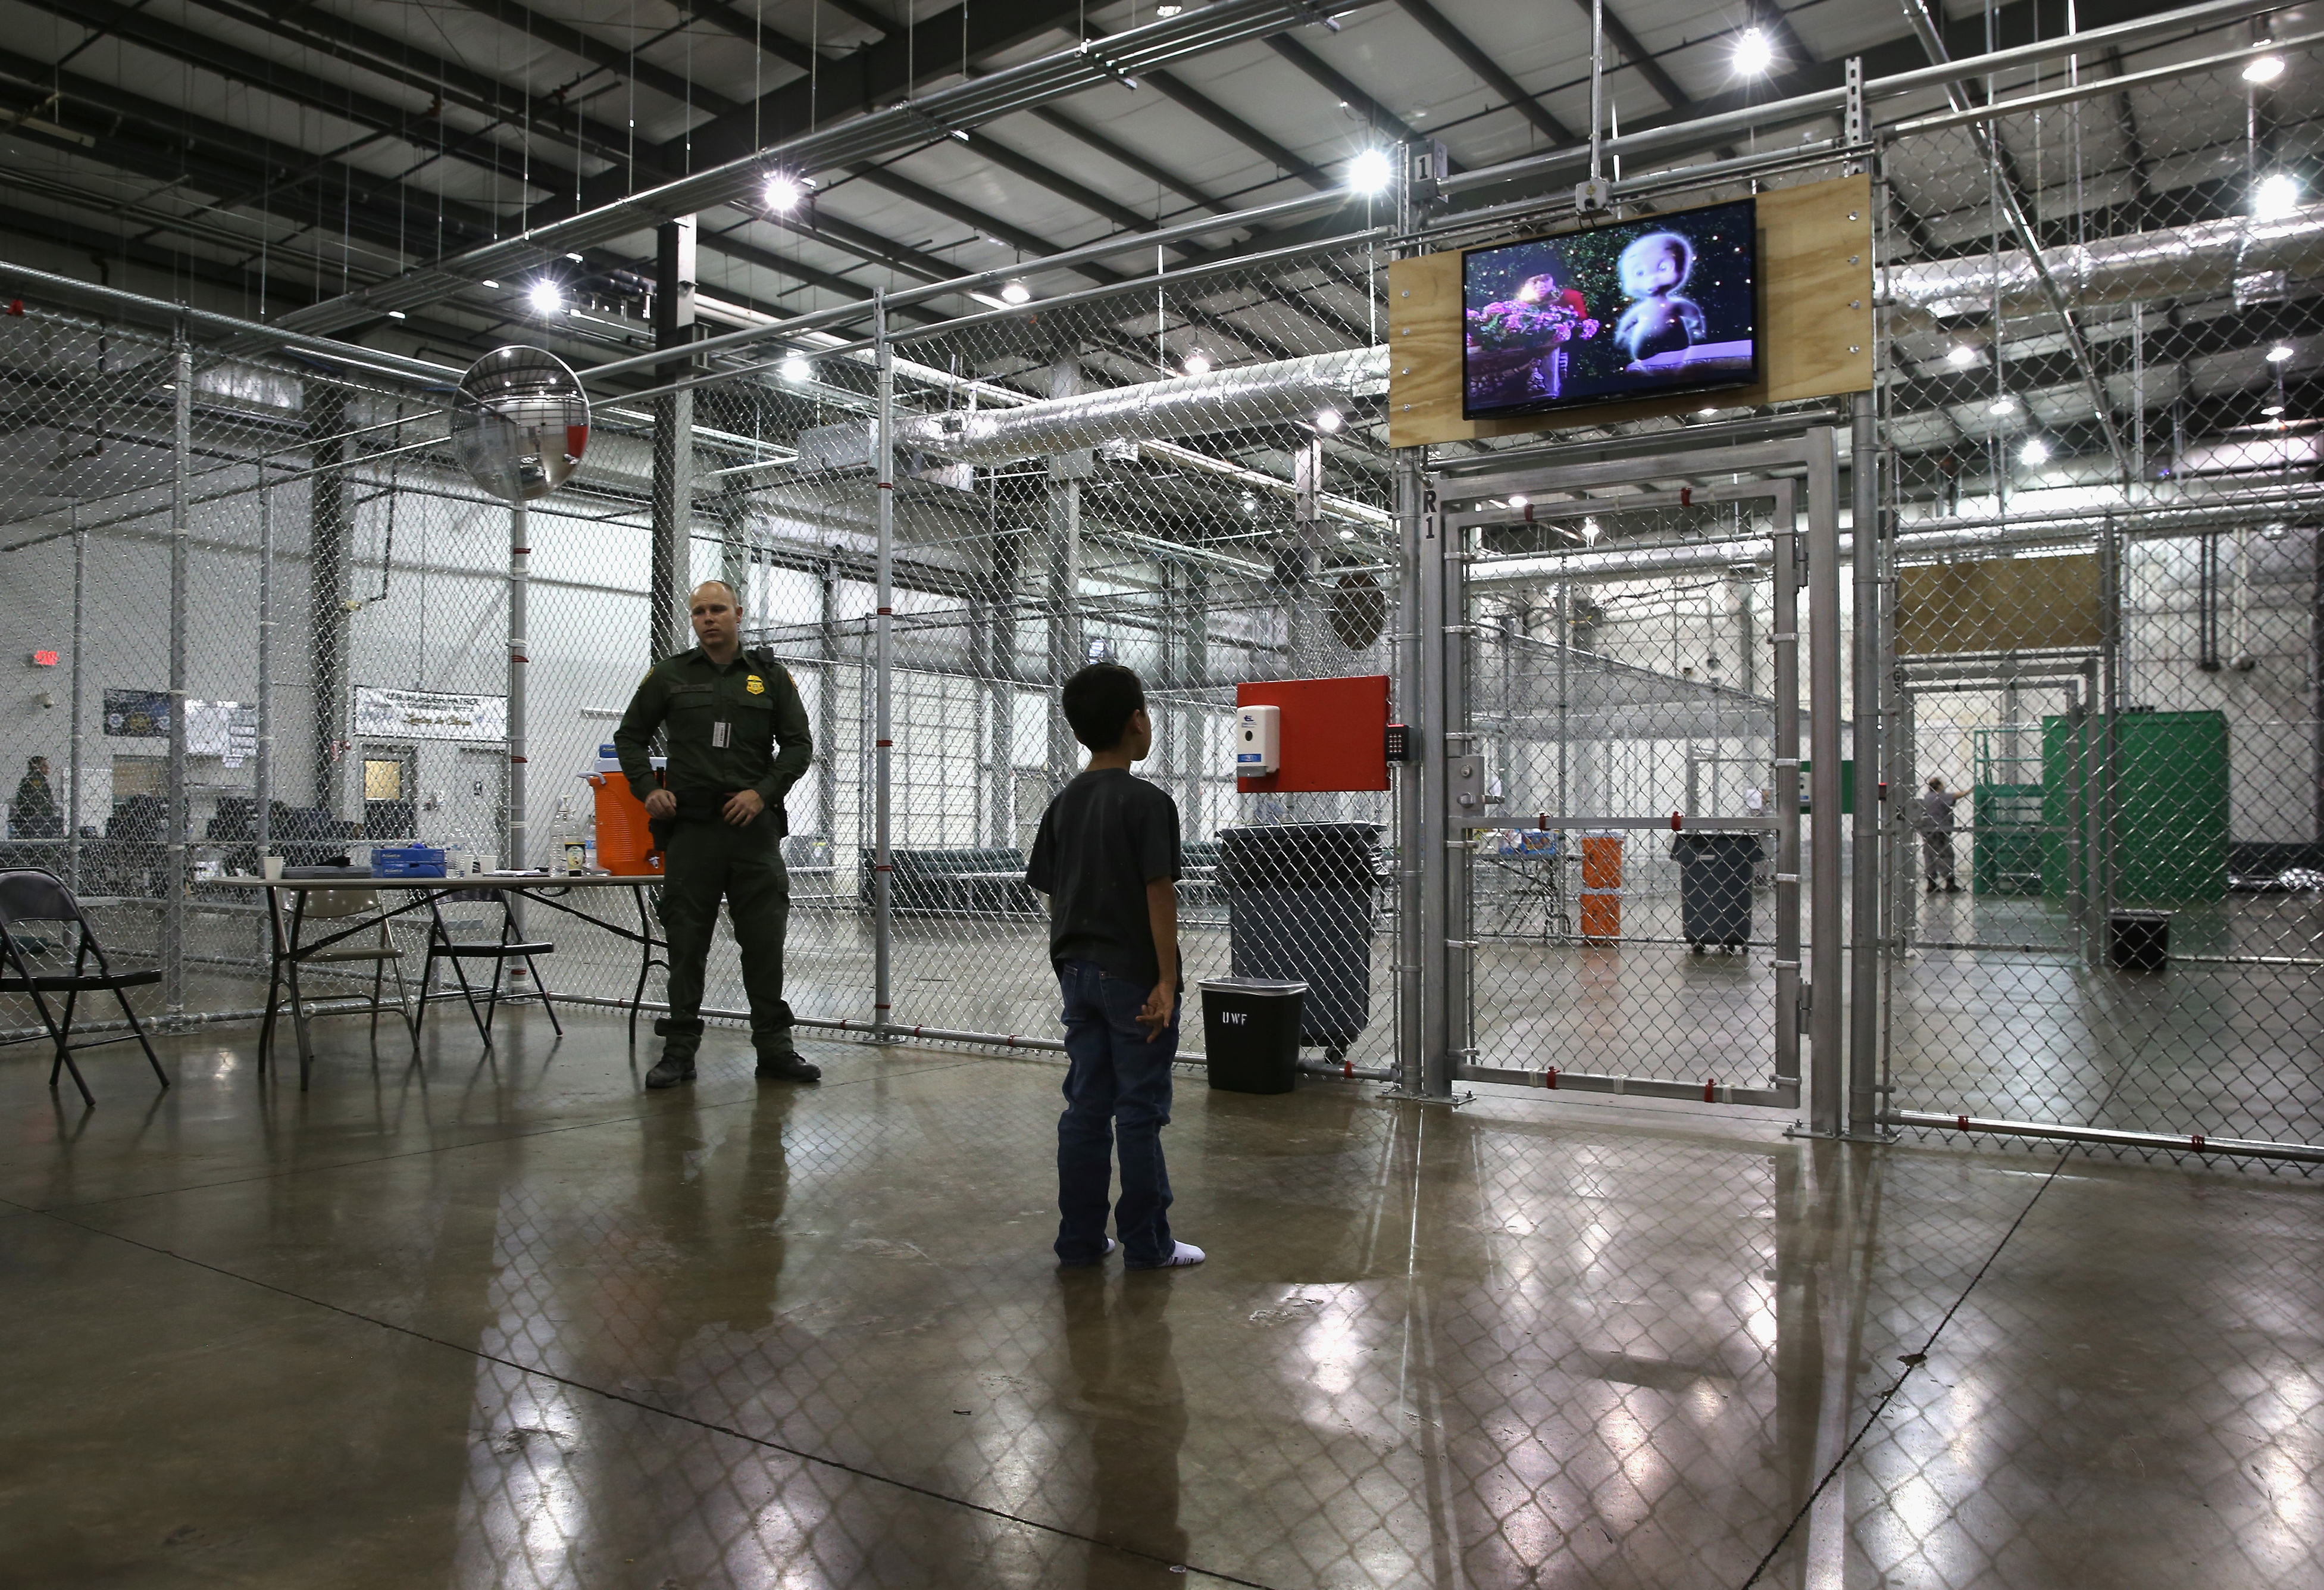 A boy from Honduras watches a movie at a detention facility run by the U.S. Border Patrol in McAllen, Tex. on Sept. 8, 2014.